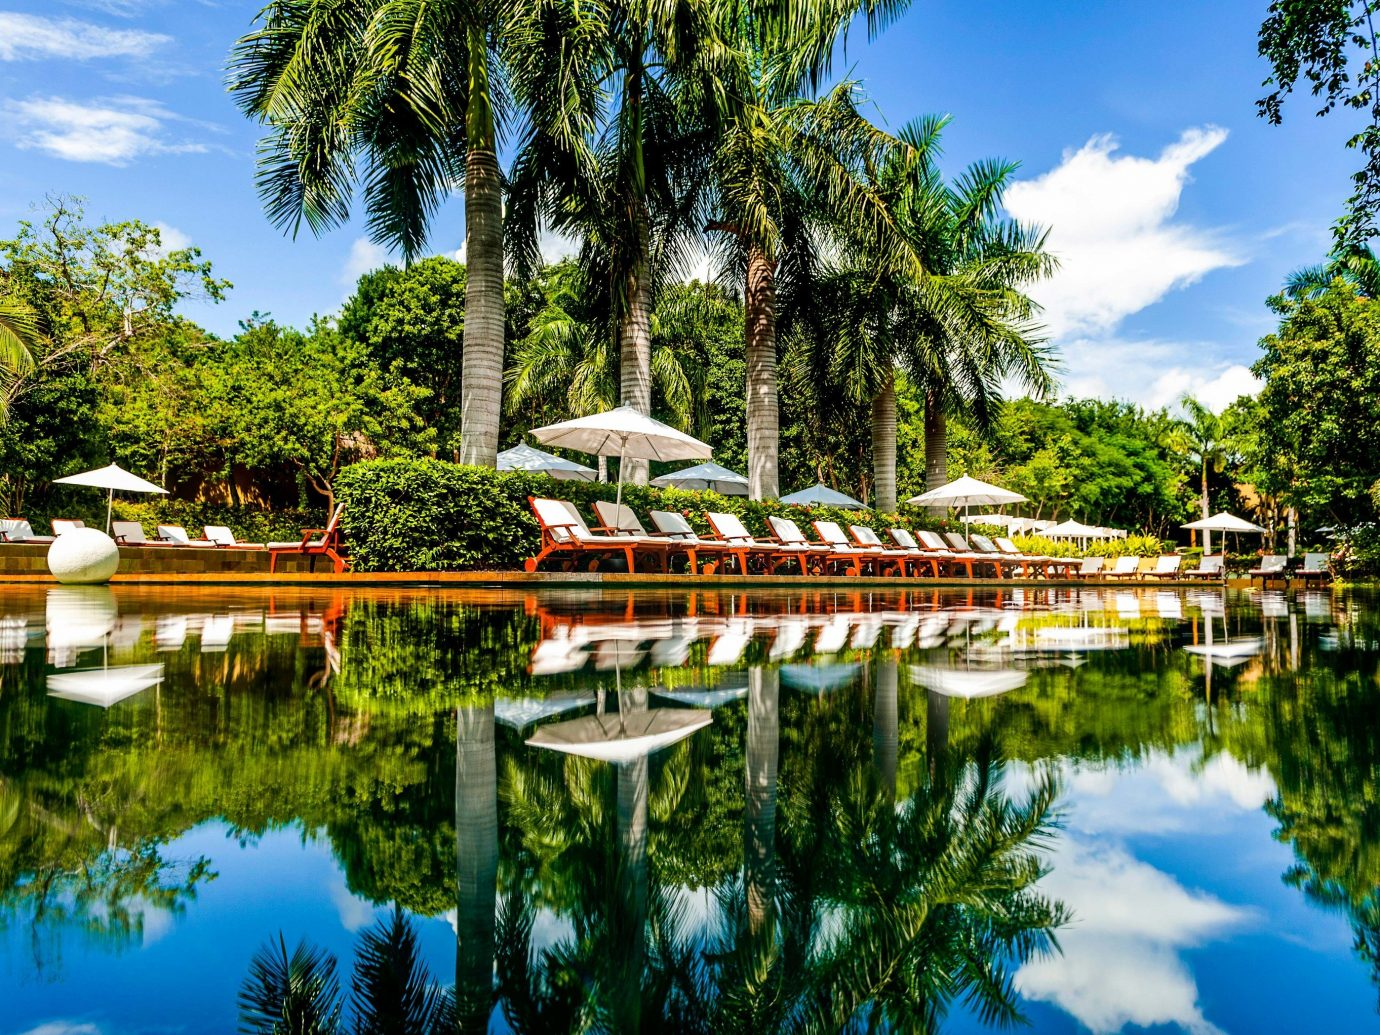 All-inclusive All-Inclusive Resorts Hotels Mexico Riviera Maya, Mexico Trip Ideas reflection water Nature waterway tree sky plant tourist attraction leaf leisure Lake pond Resort landscape bayou tourism botanical garden Canal reflecting pool estate arecales palm tree bank Garden watercourse